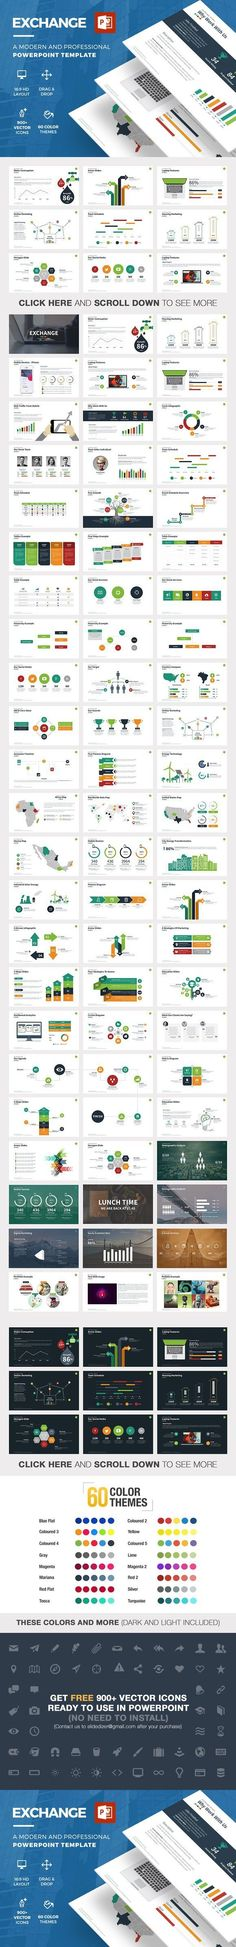 Business infographic : Exchange Powerpoint Template. Business Infographic. $15.00